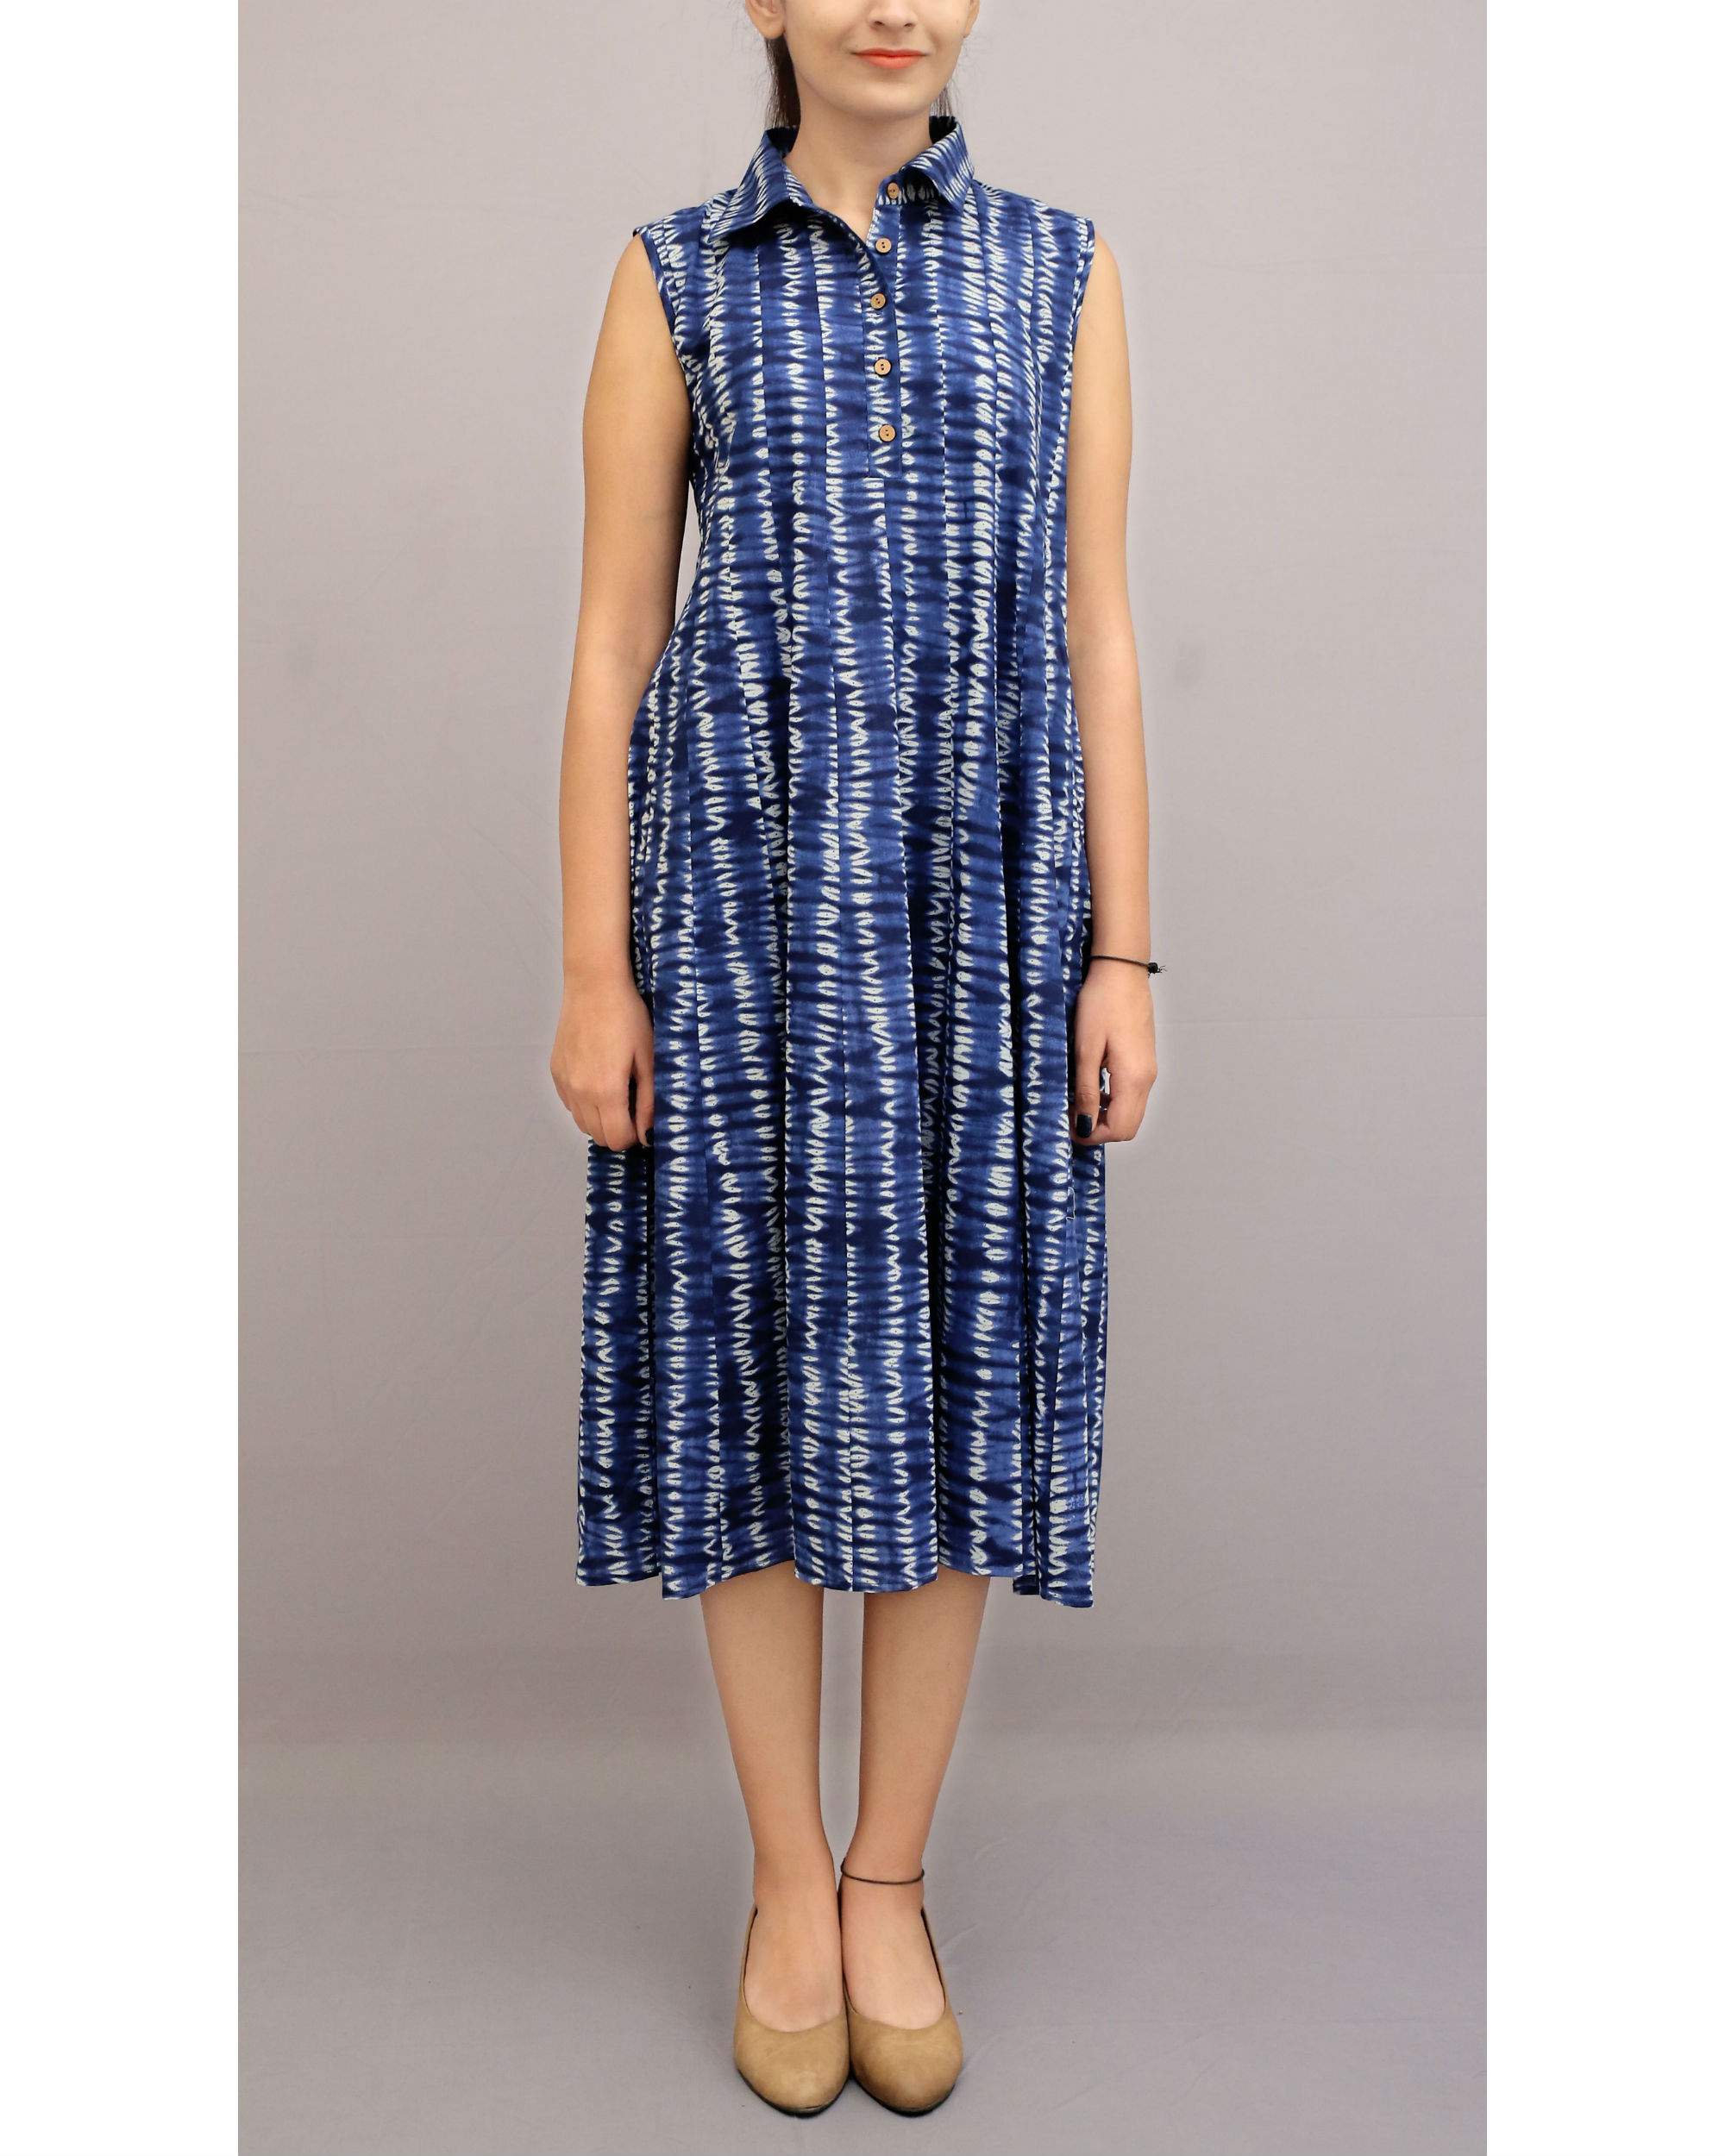 Shibori shirt collar dress